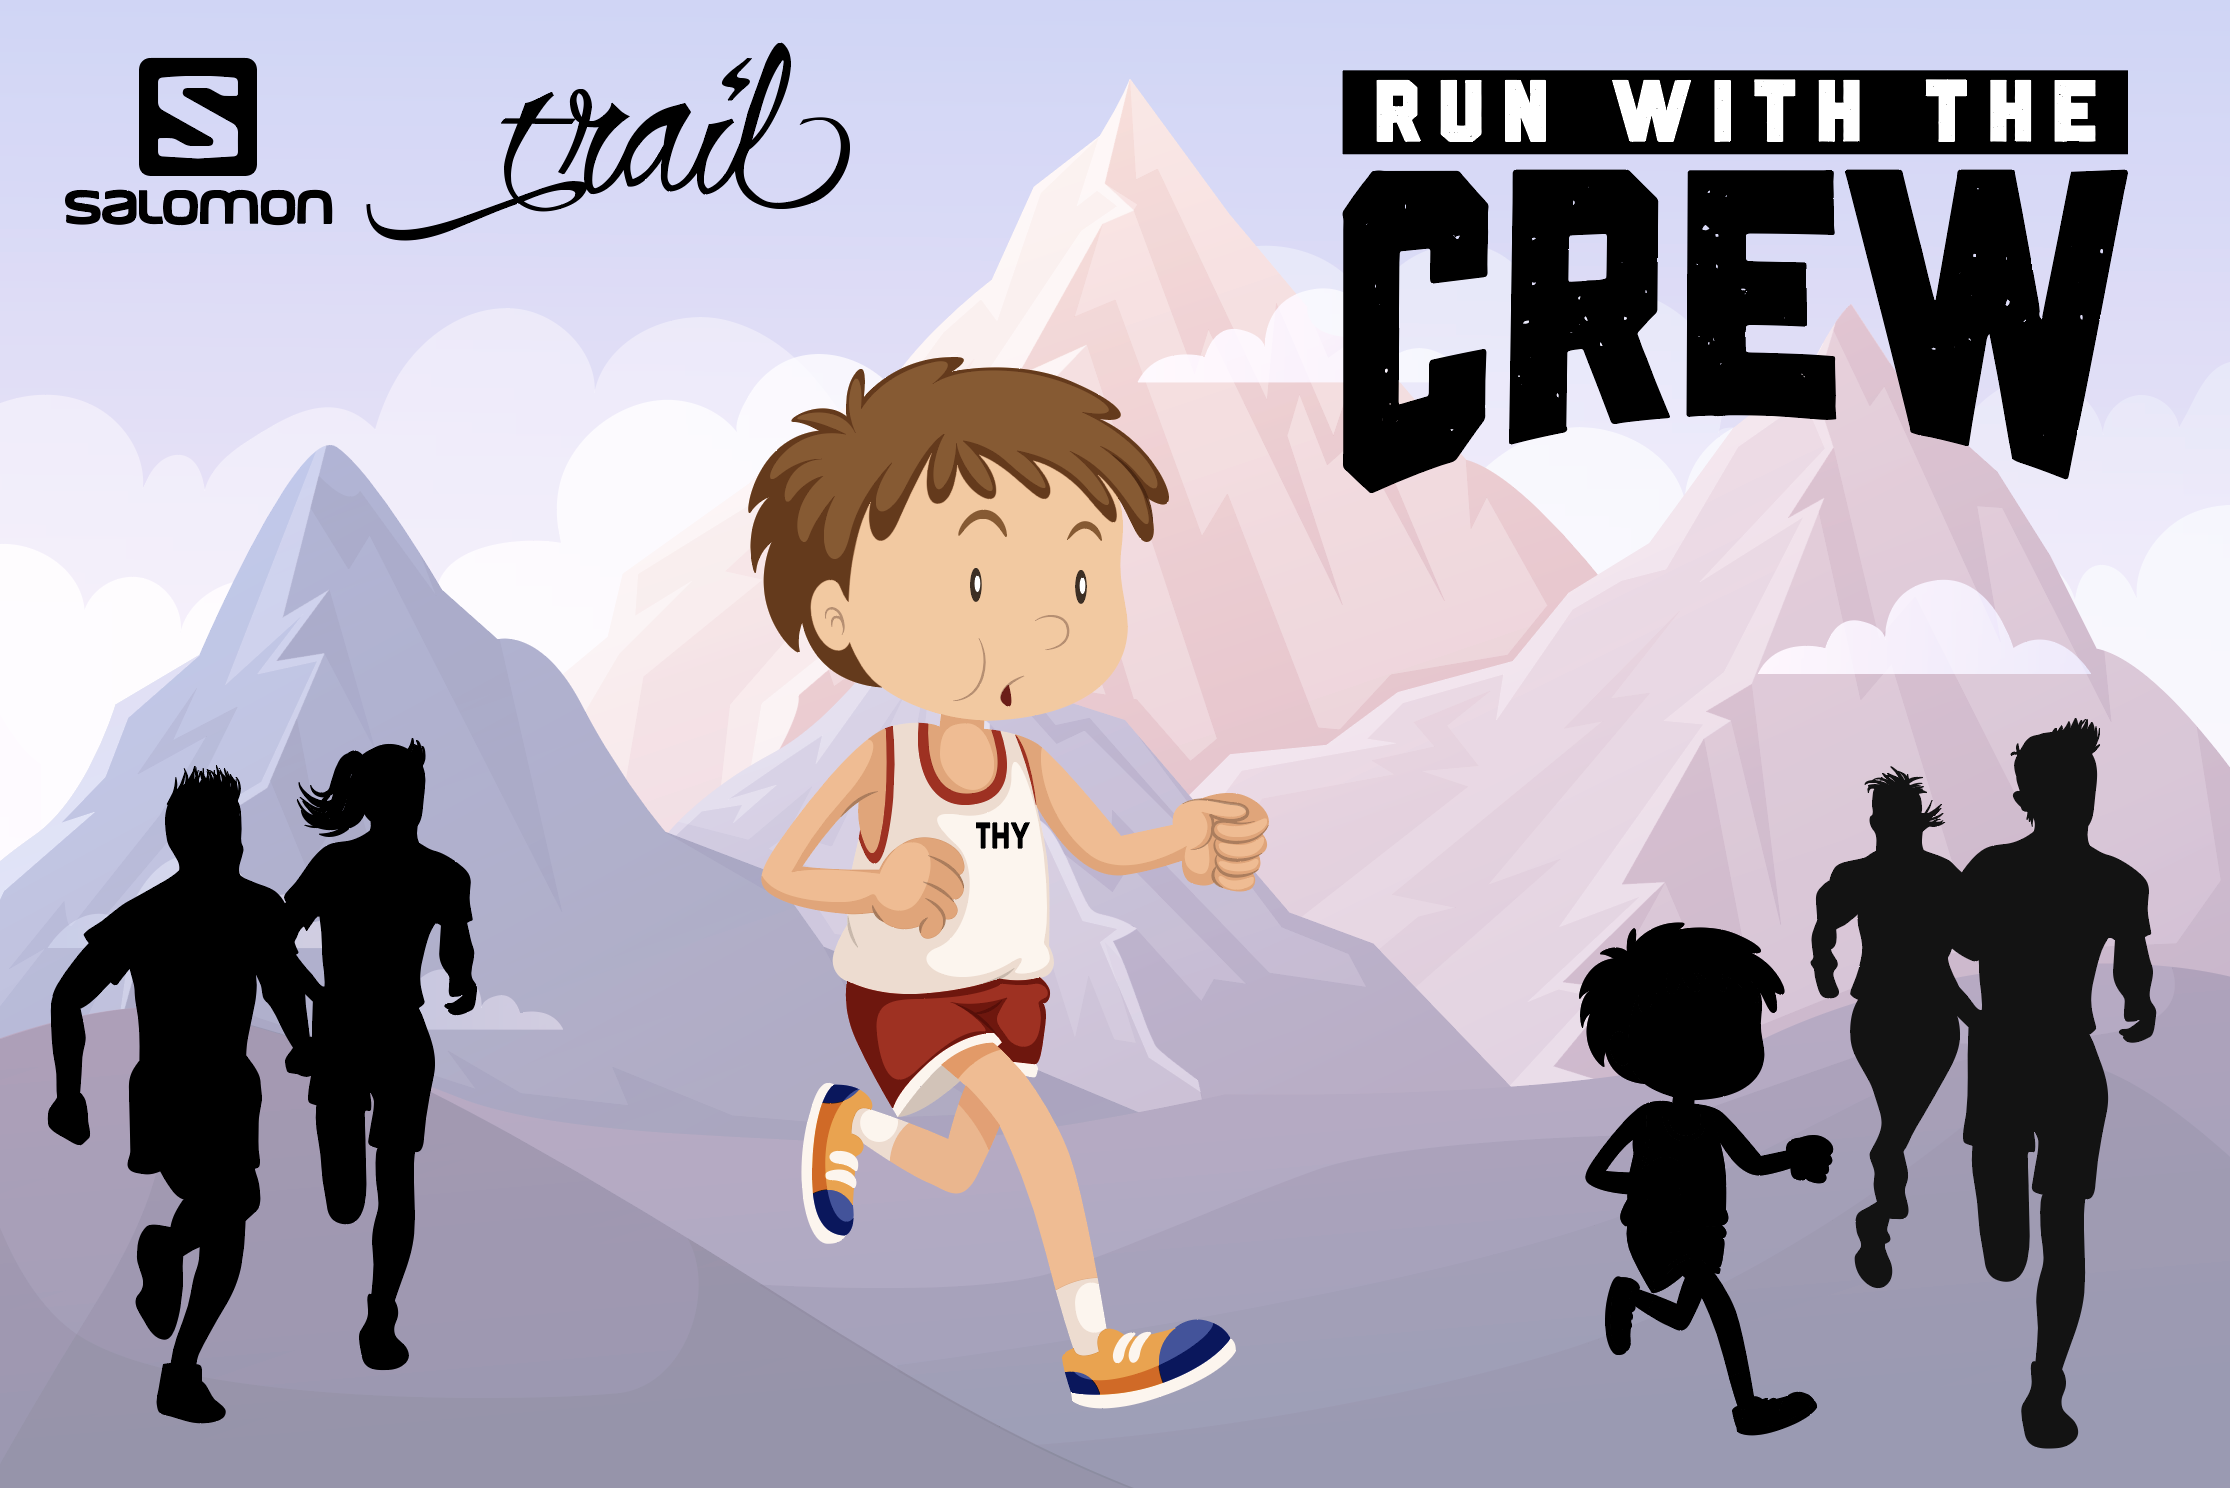 RUN WITH THE CREW: die Serie geht mit 3 Communitytrails weiter!